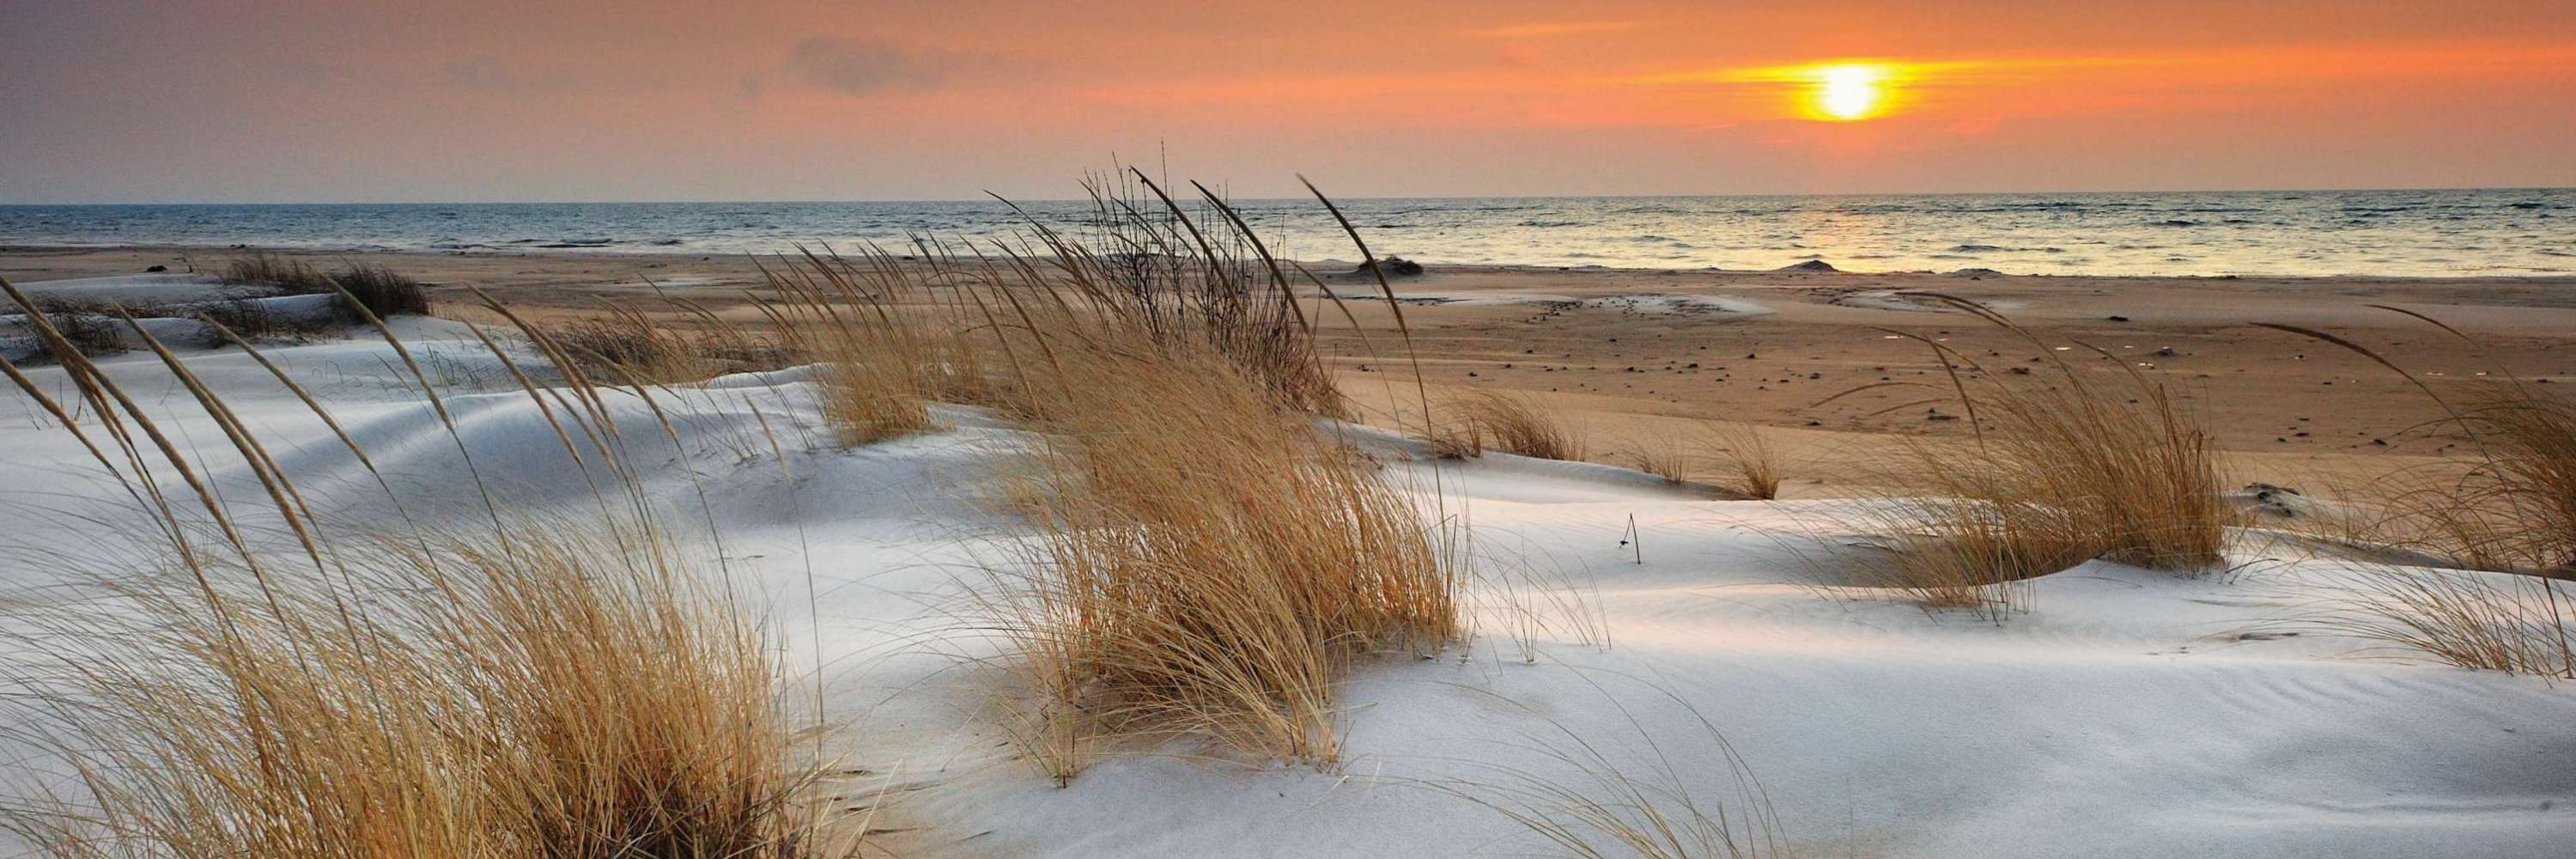 Snow-covered beach along Great Lakes